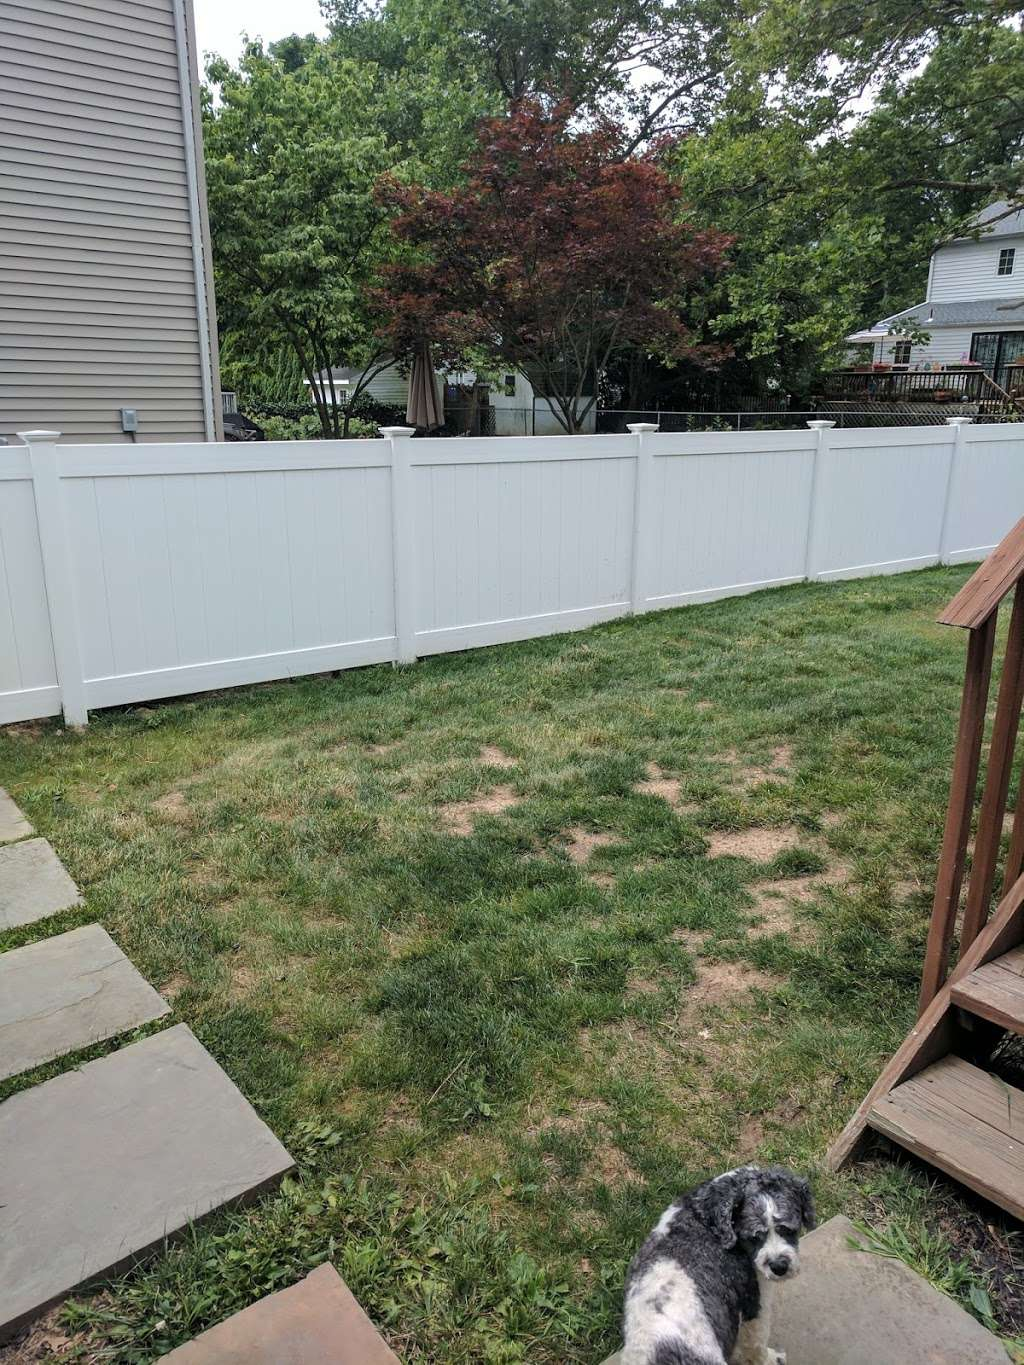 Barcia Bros Fence Inc - store  | Photo 3 of 8 | Address: 514 River Dr, Garfield, NJ 07026, USA | Phone: (973) 772-0272